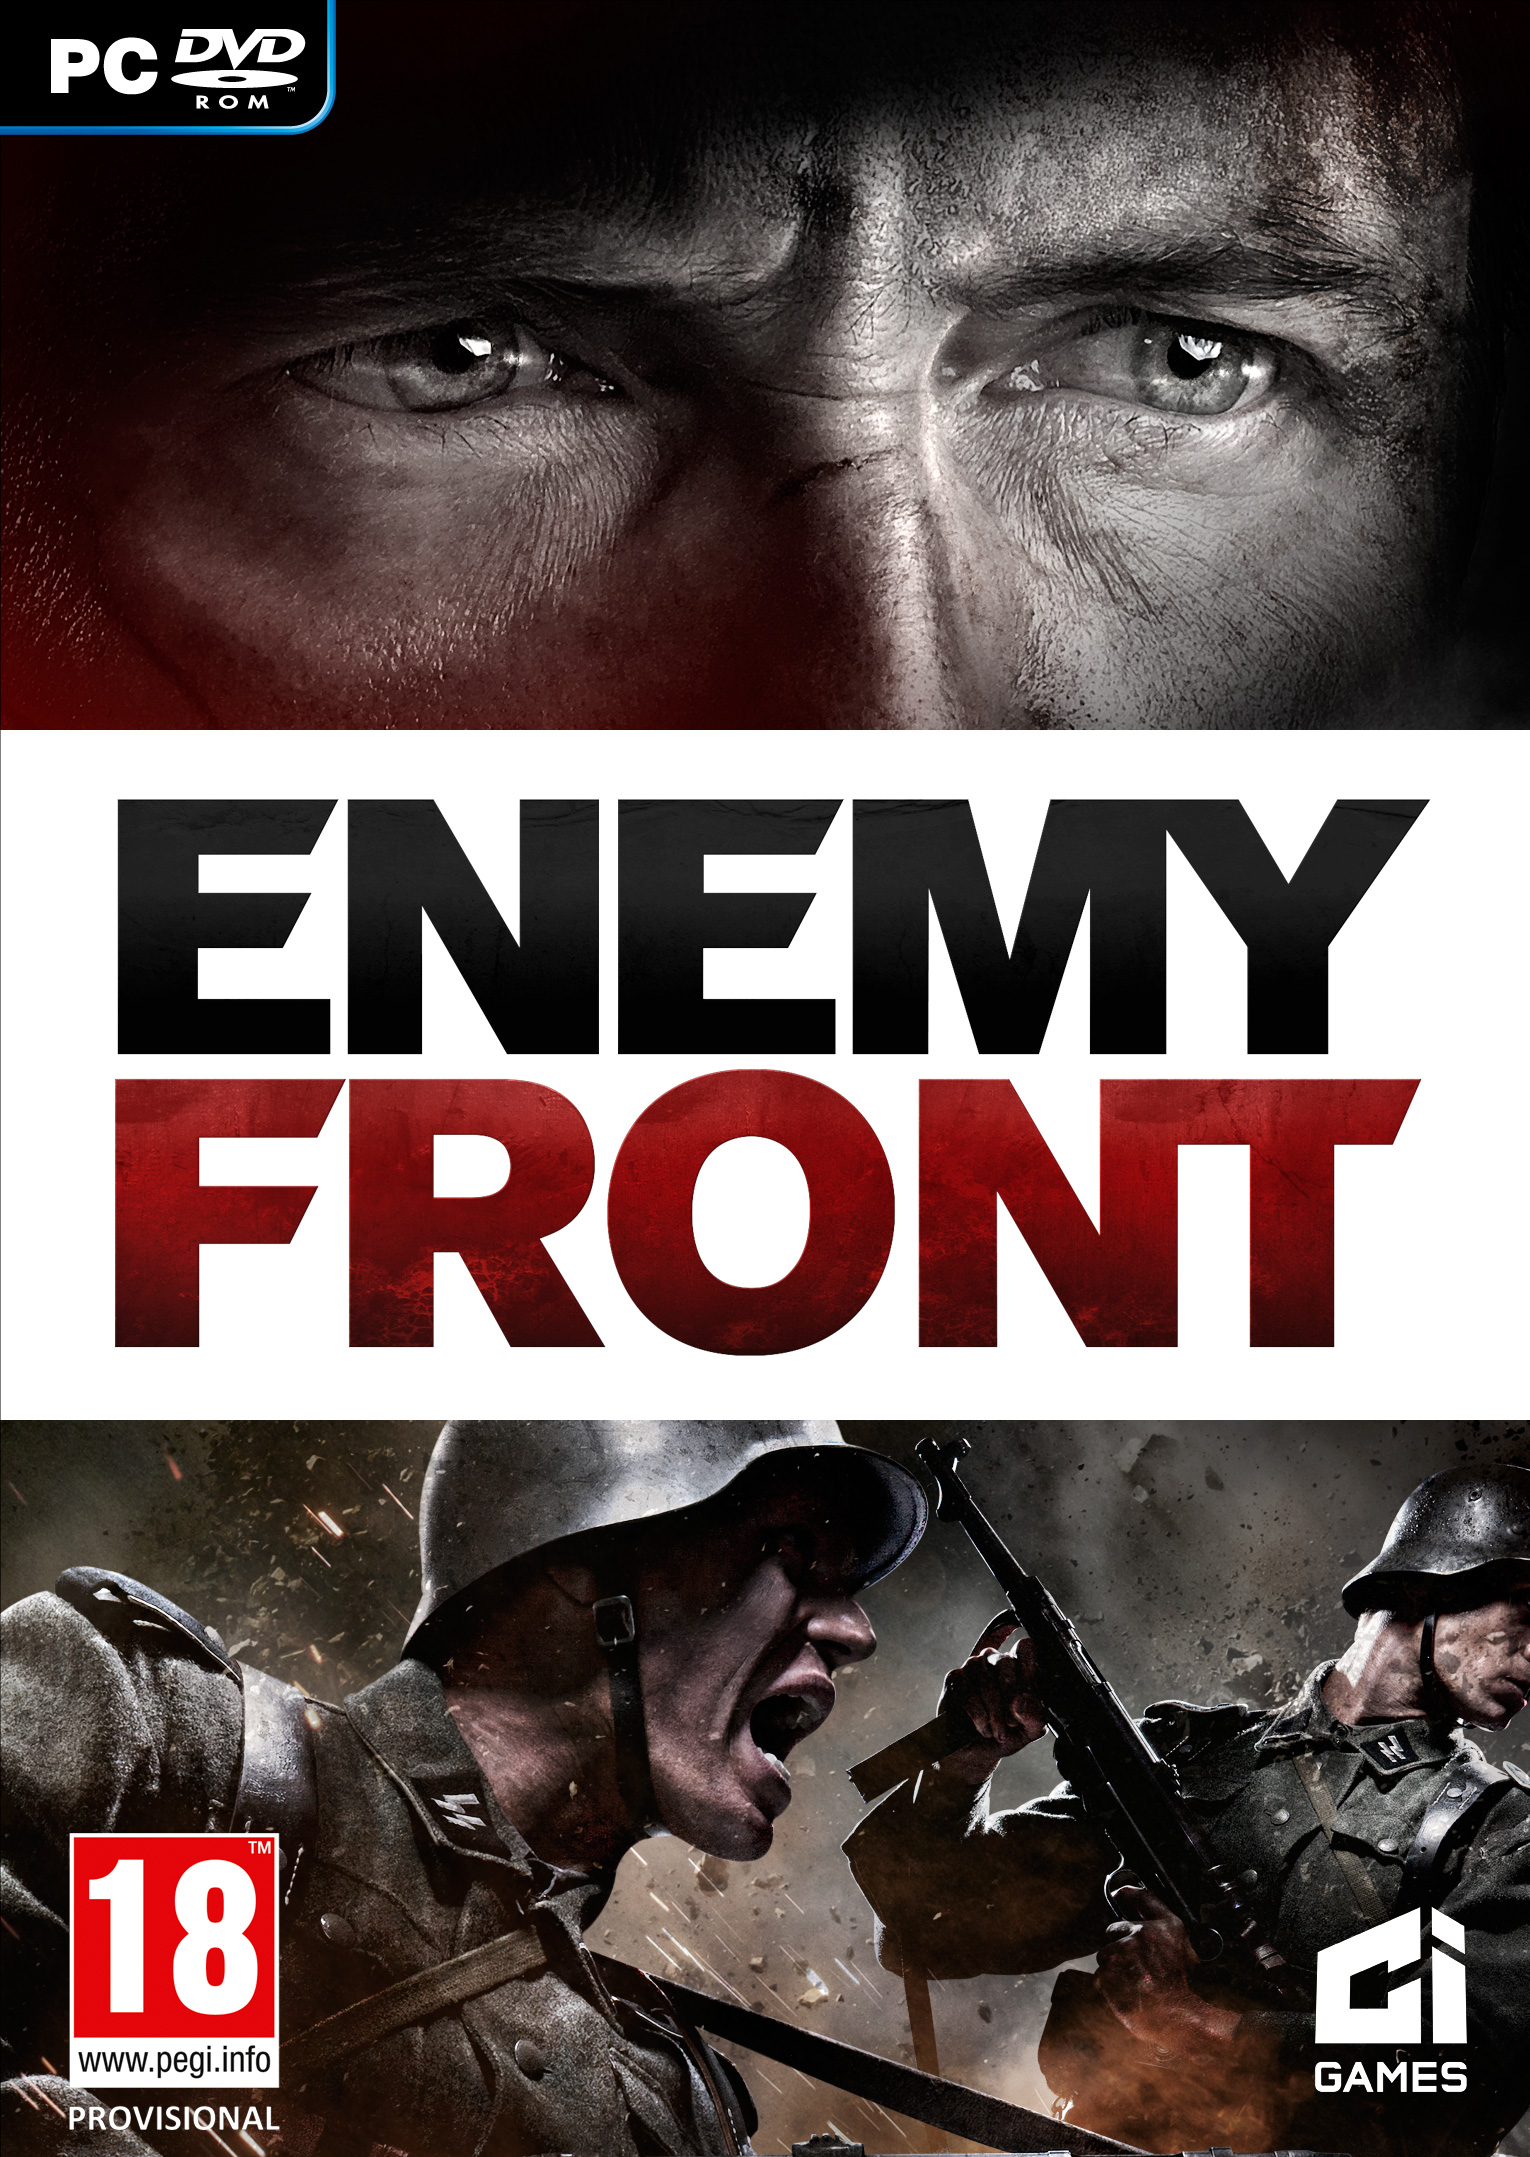 Enemy Front Video Focuses On Tactics Box Art Released VG247